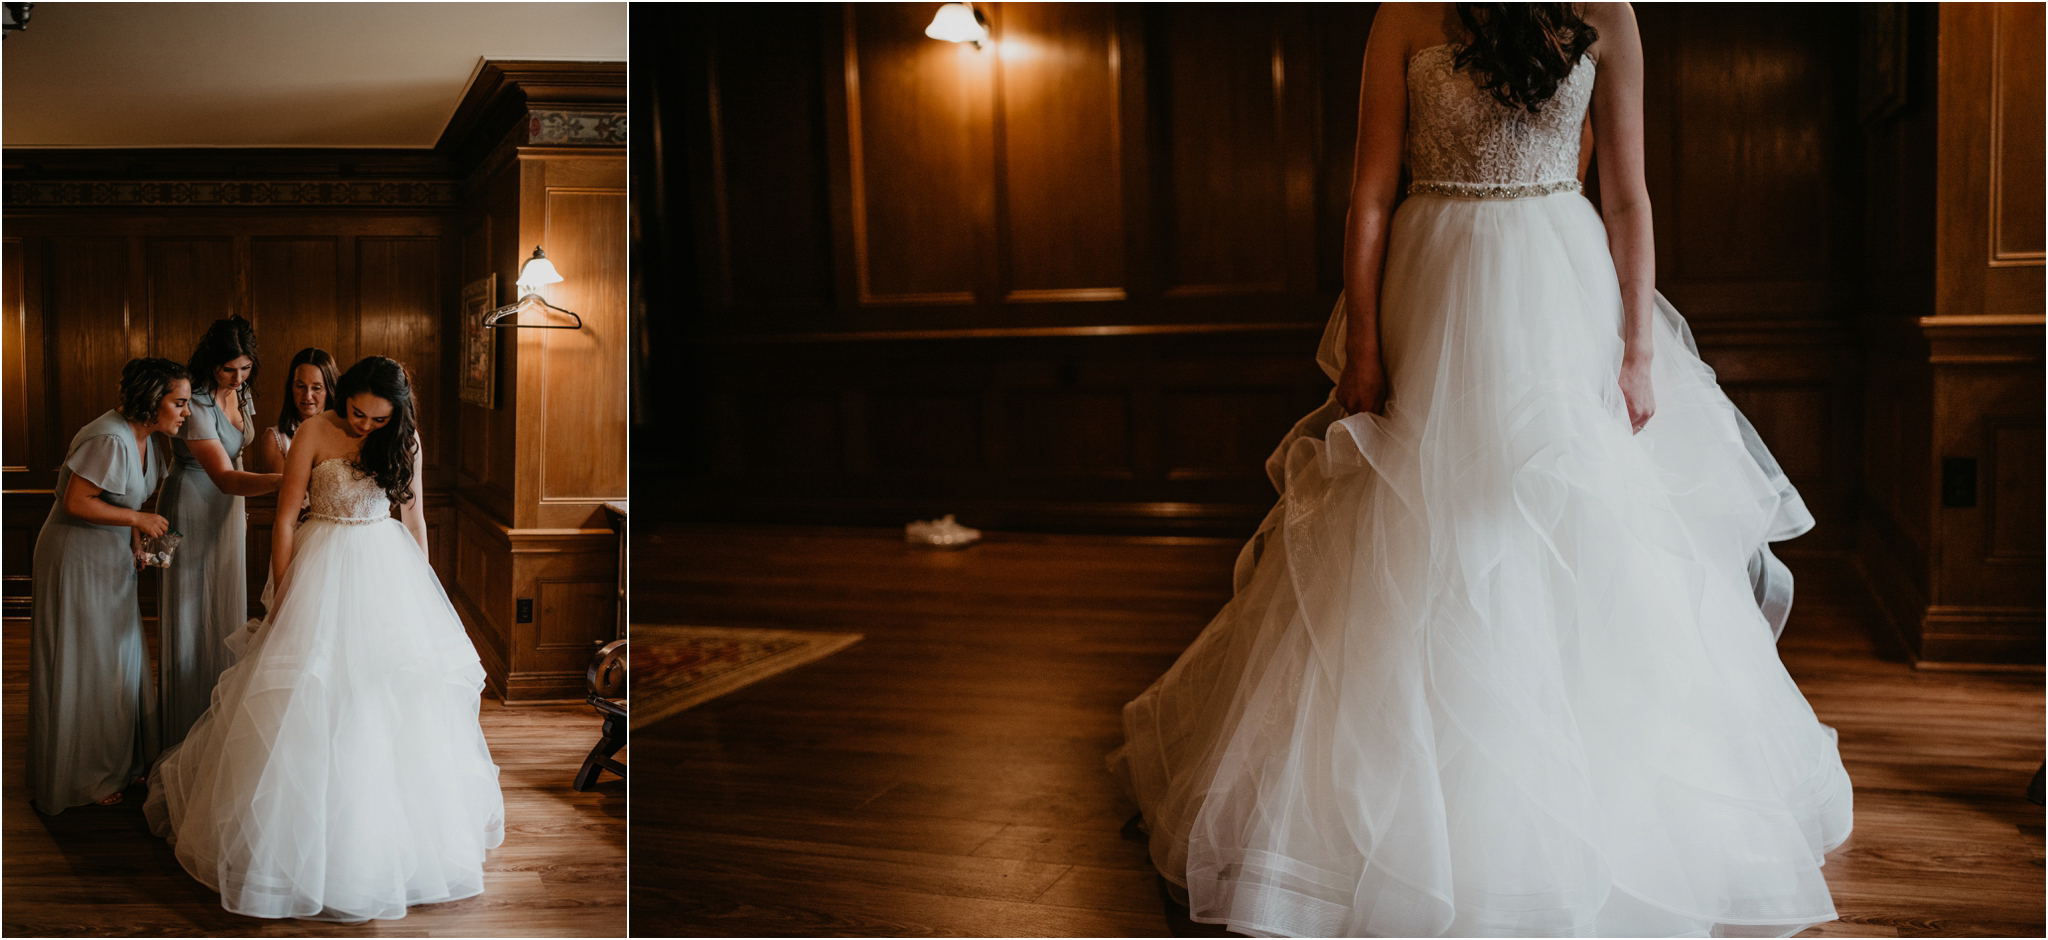 chance-and-ondrea-lairmont-manor-wedding-seattle-photographer-013.jpg